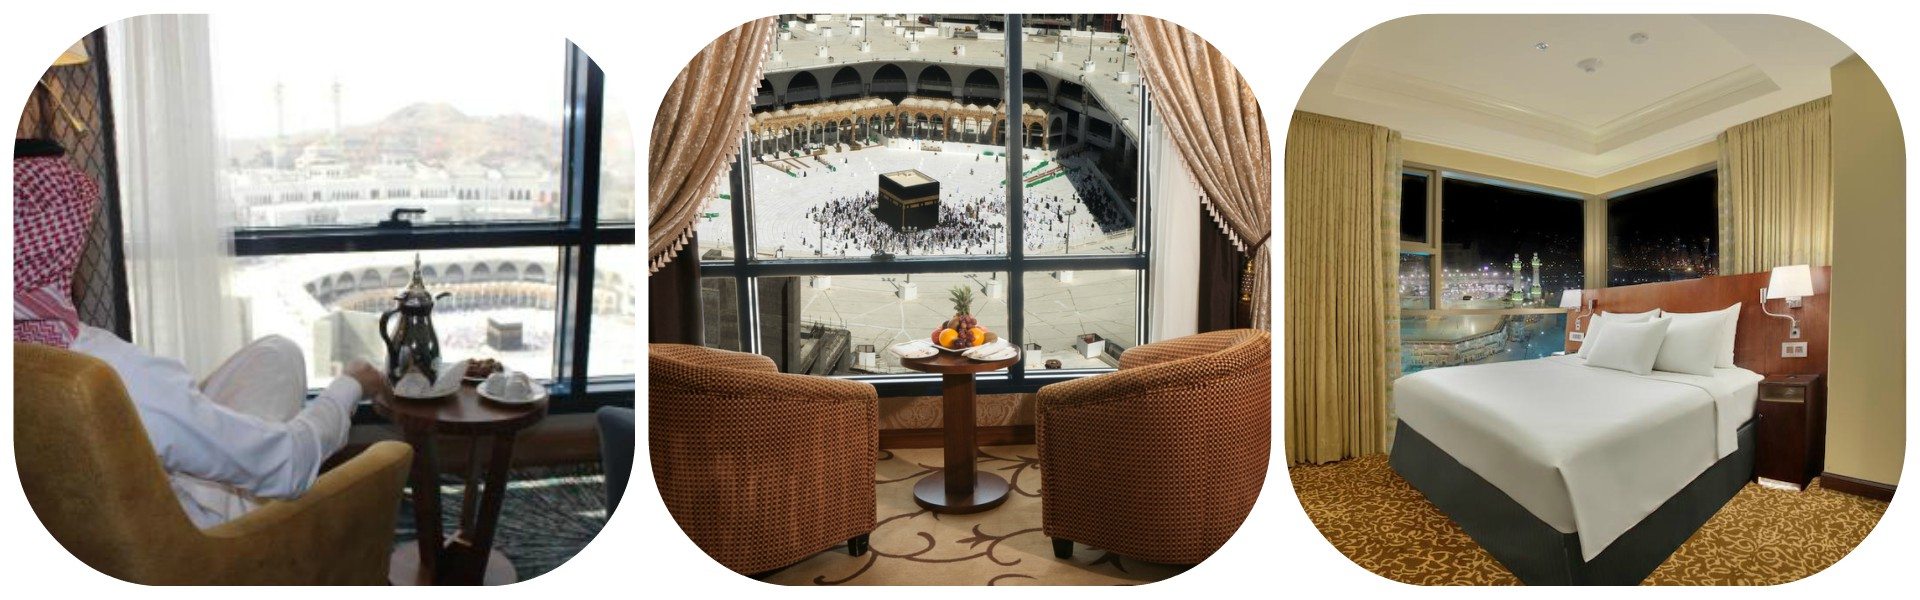 booking makkah hotels ramadan month last ten days 2020